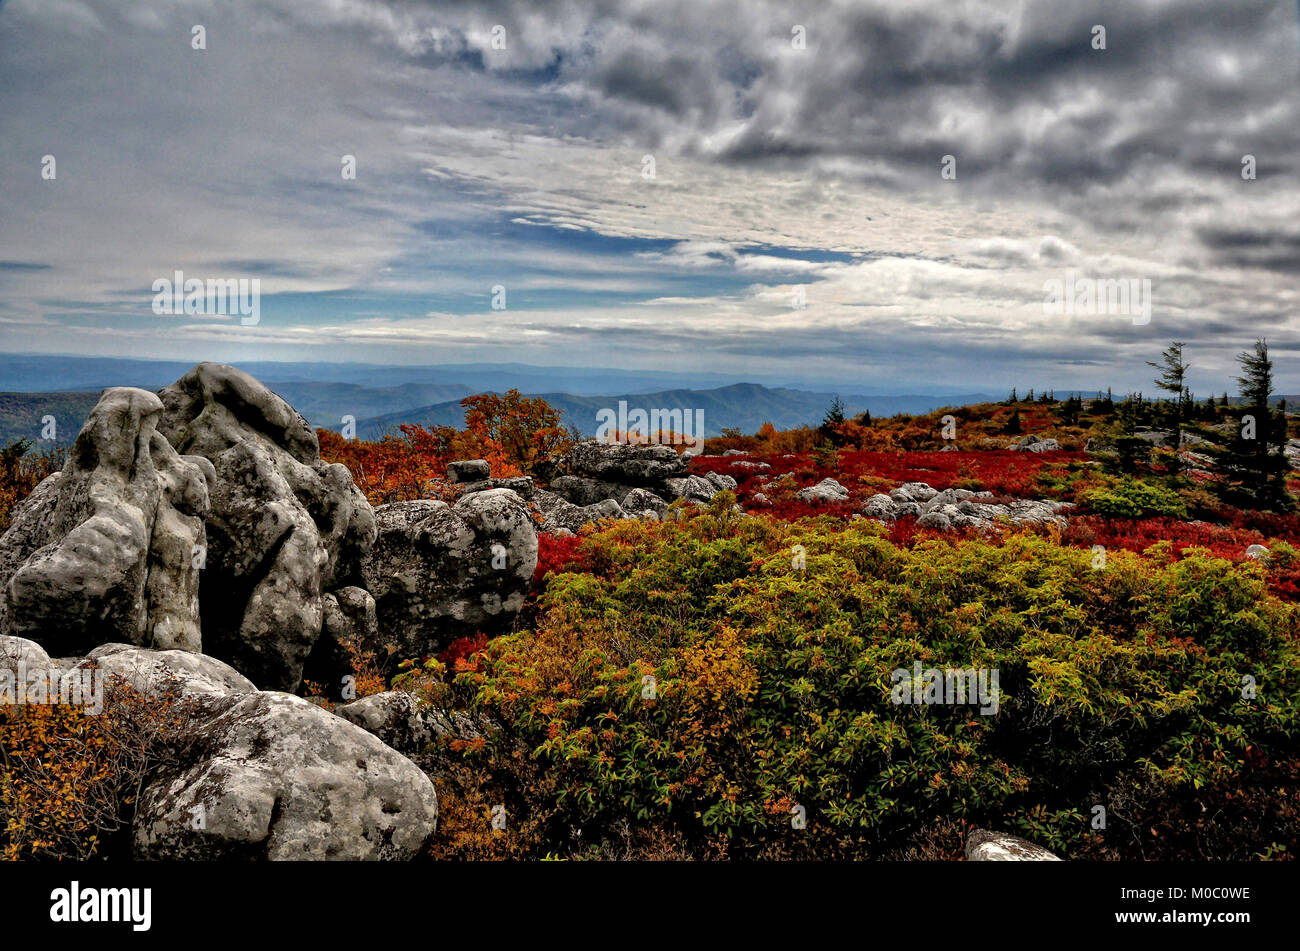 Dolly Sods heath lands in autumn color West Virginia - Stock Image